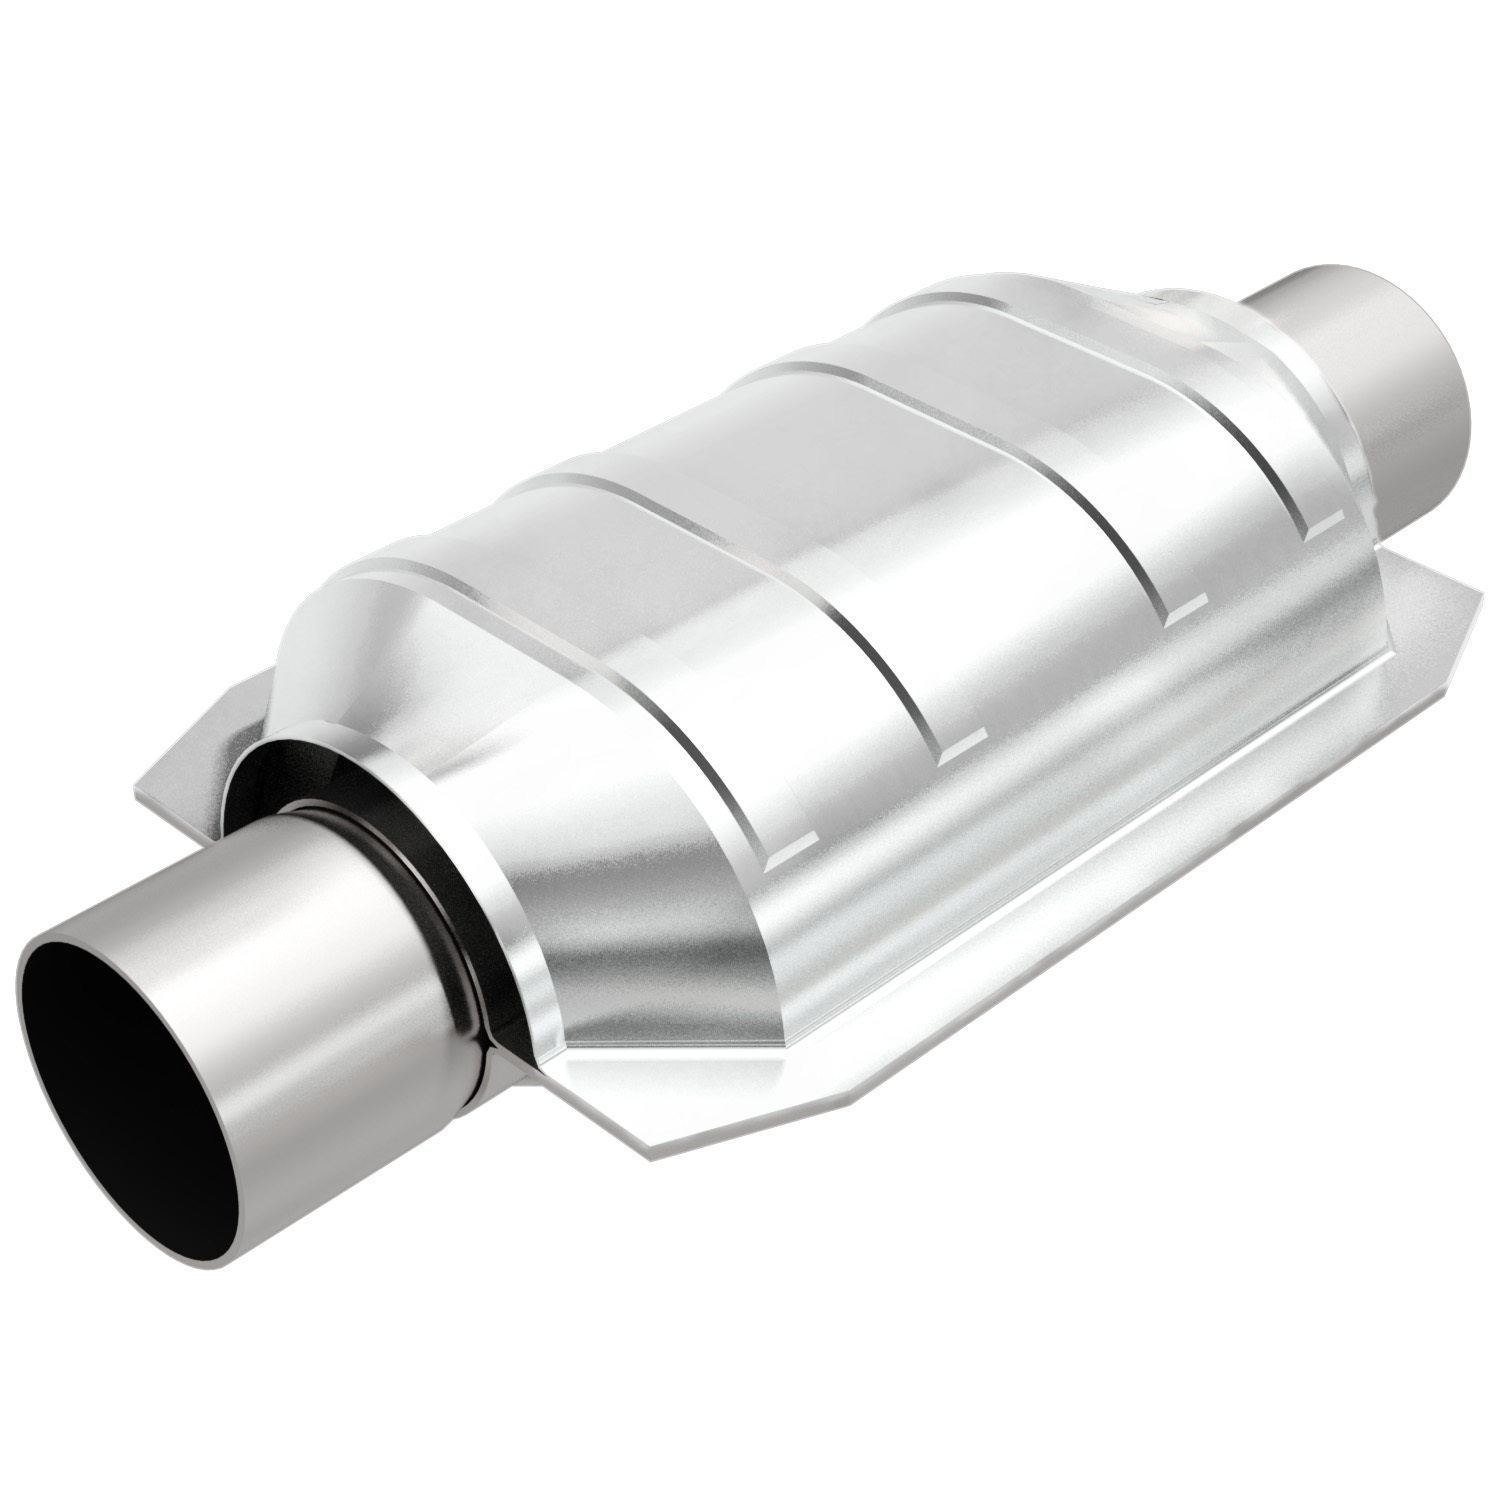 MagnaFlow Exhaust Products Catalytic Converter (33106)